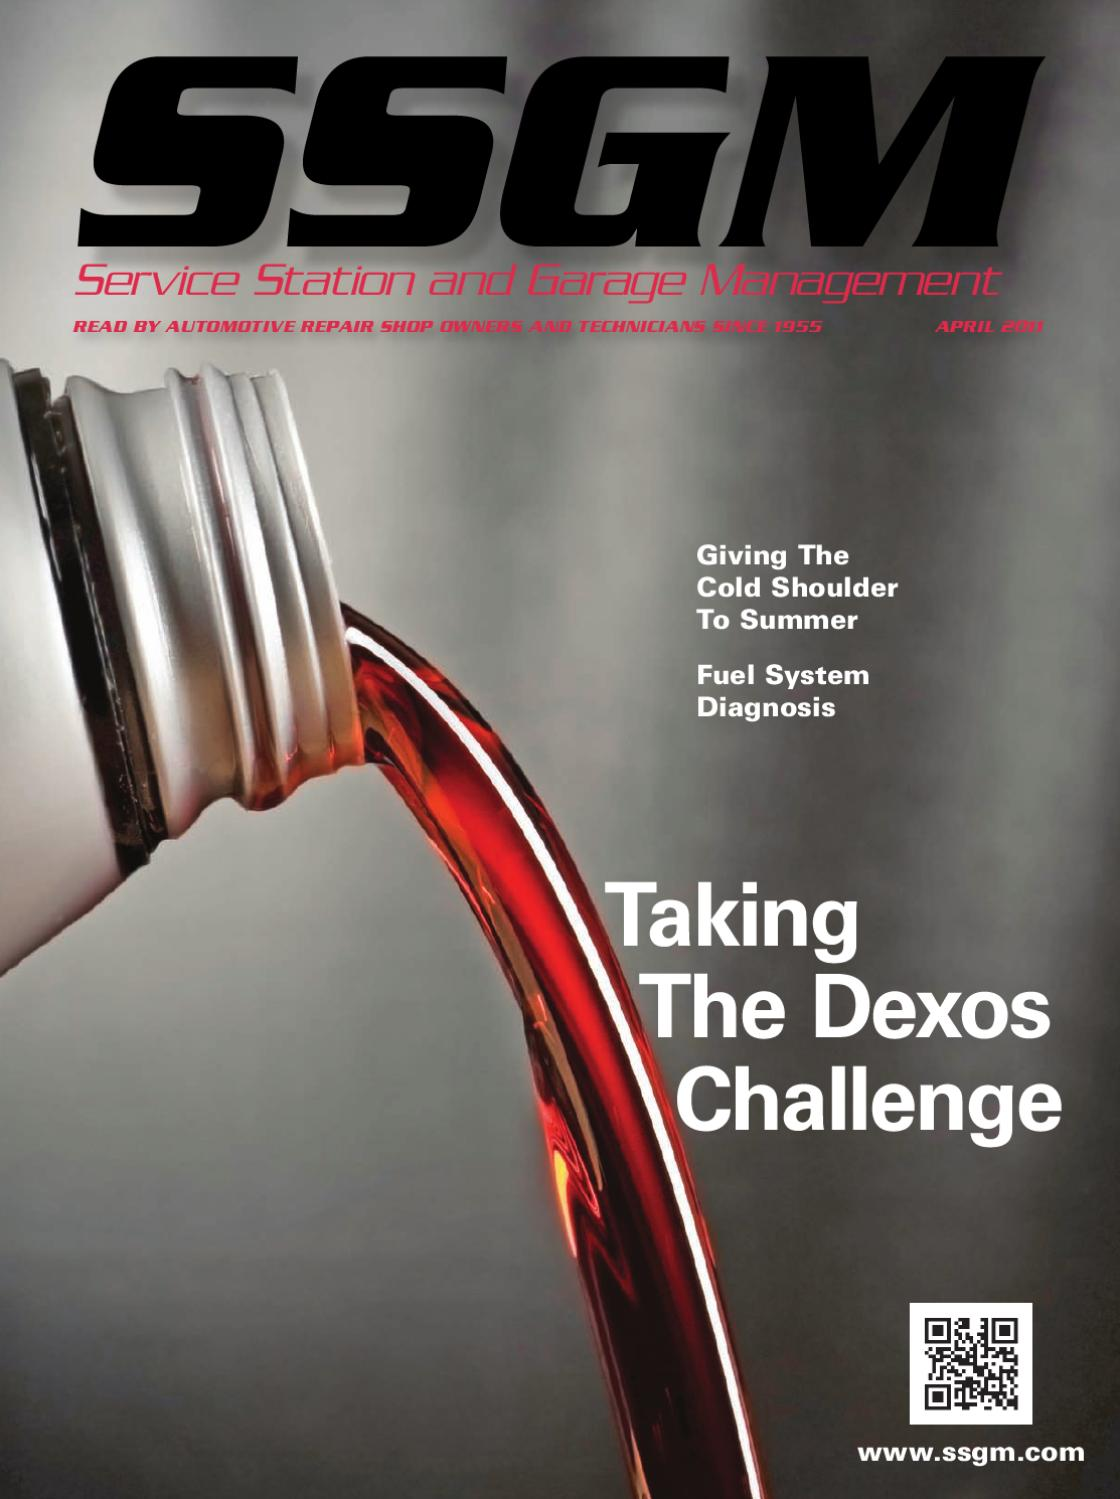 hight resolution of service station garage management april 2011 by annex business media issuu